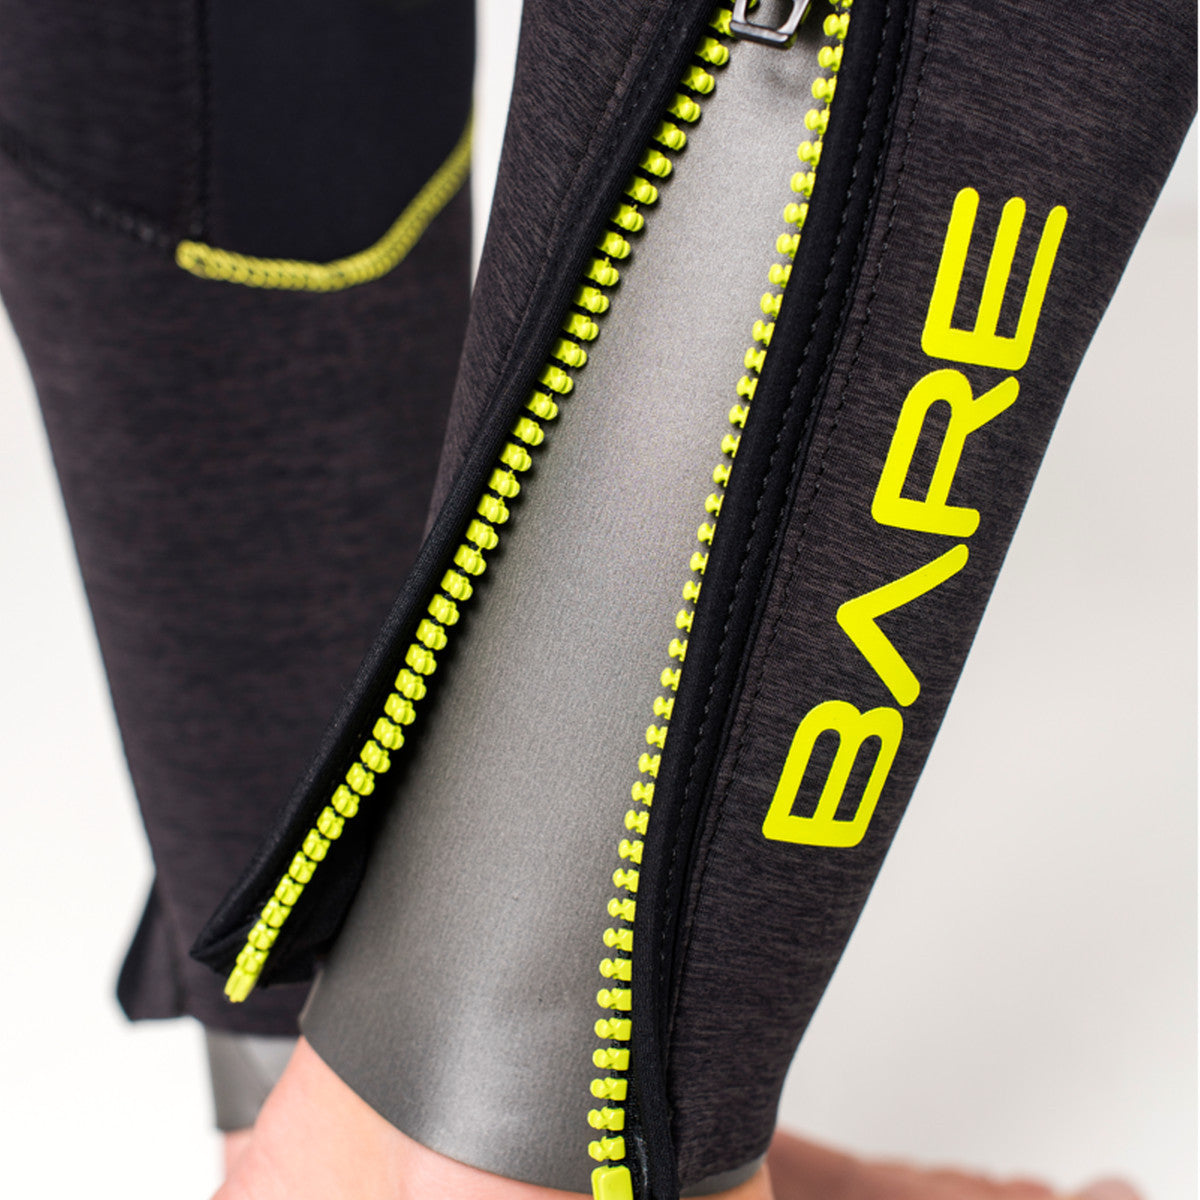 Bare Evoke 5mm Wetsuit: Womens - Oyster Diving Shop - 6